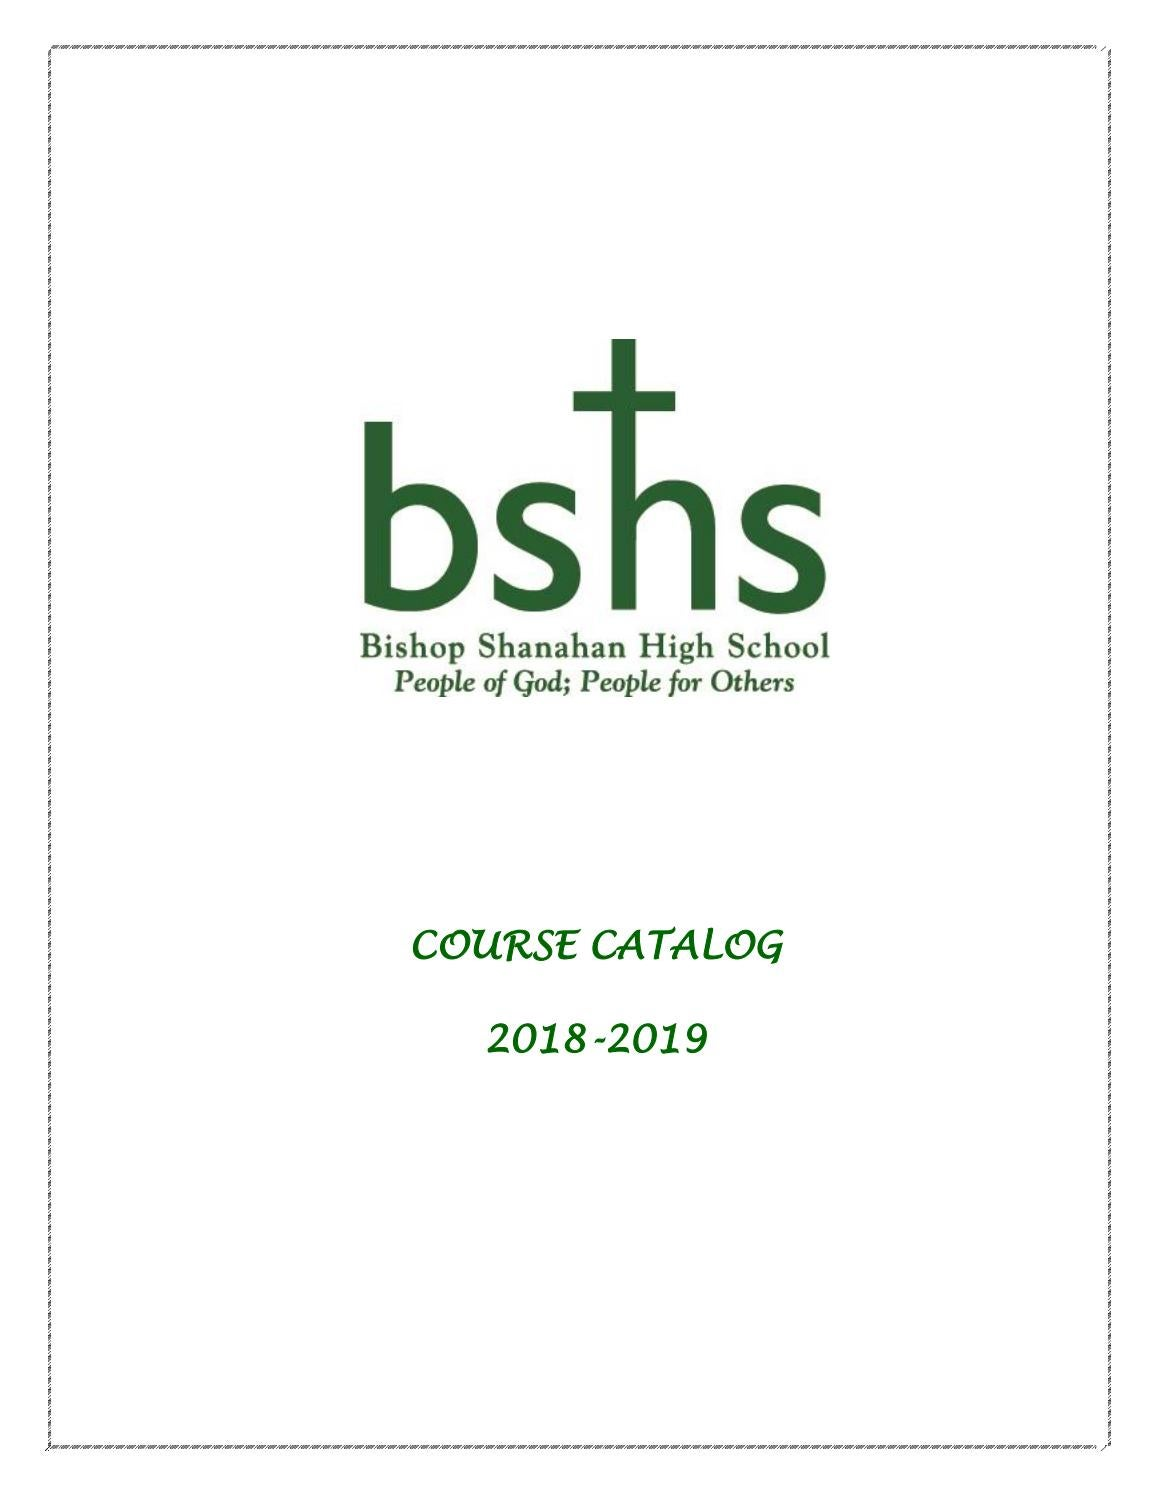 Bshs 2018 2019 Course Catalog By Bishop Shanahan Issuu Bcit Mathematics Examples Electronics Trignometry And Vectors